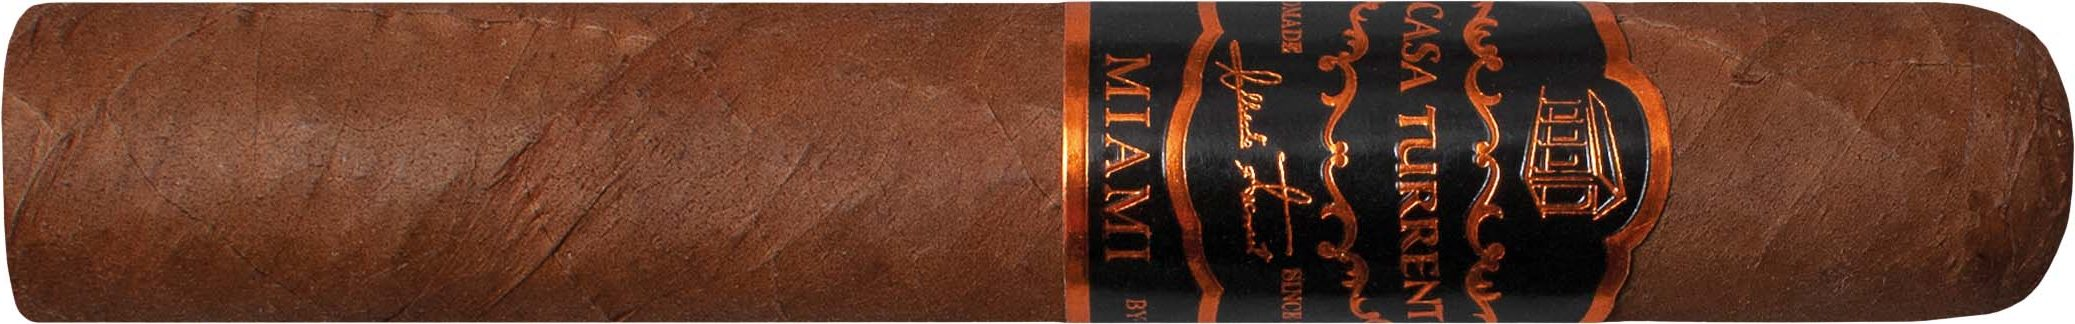 Casa Turrent Origin Series Miami Robusto Extra